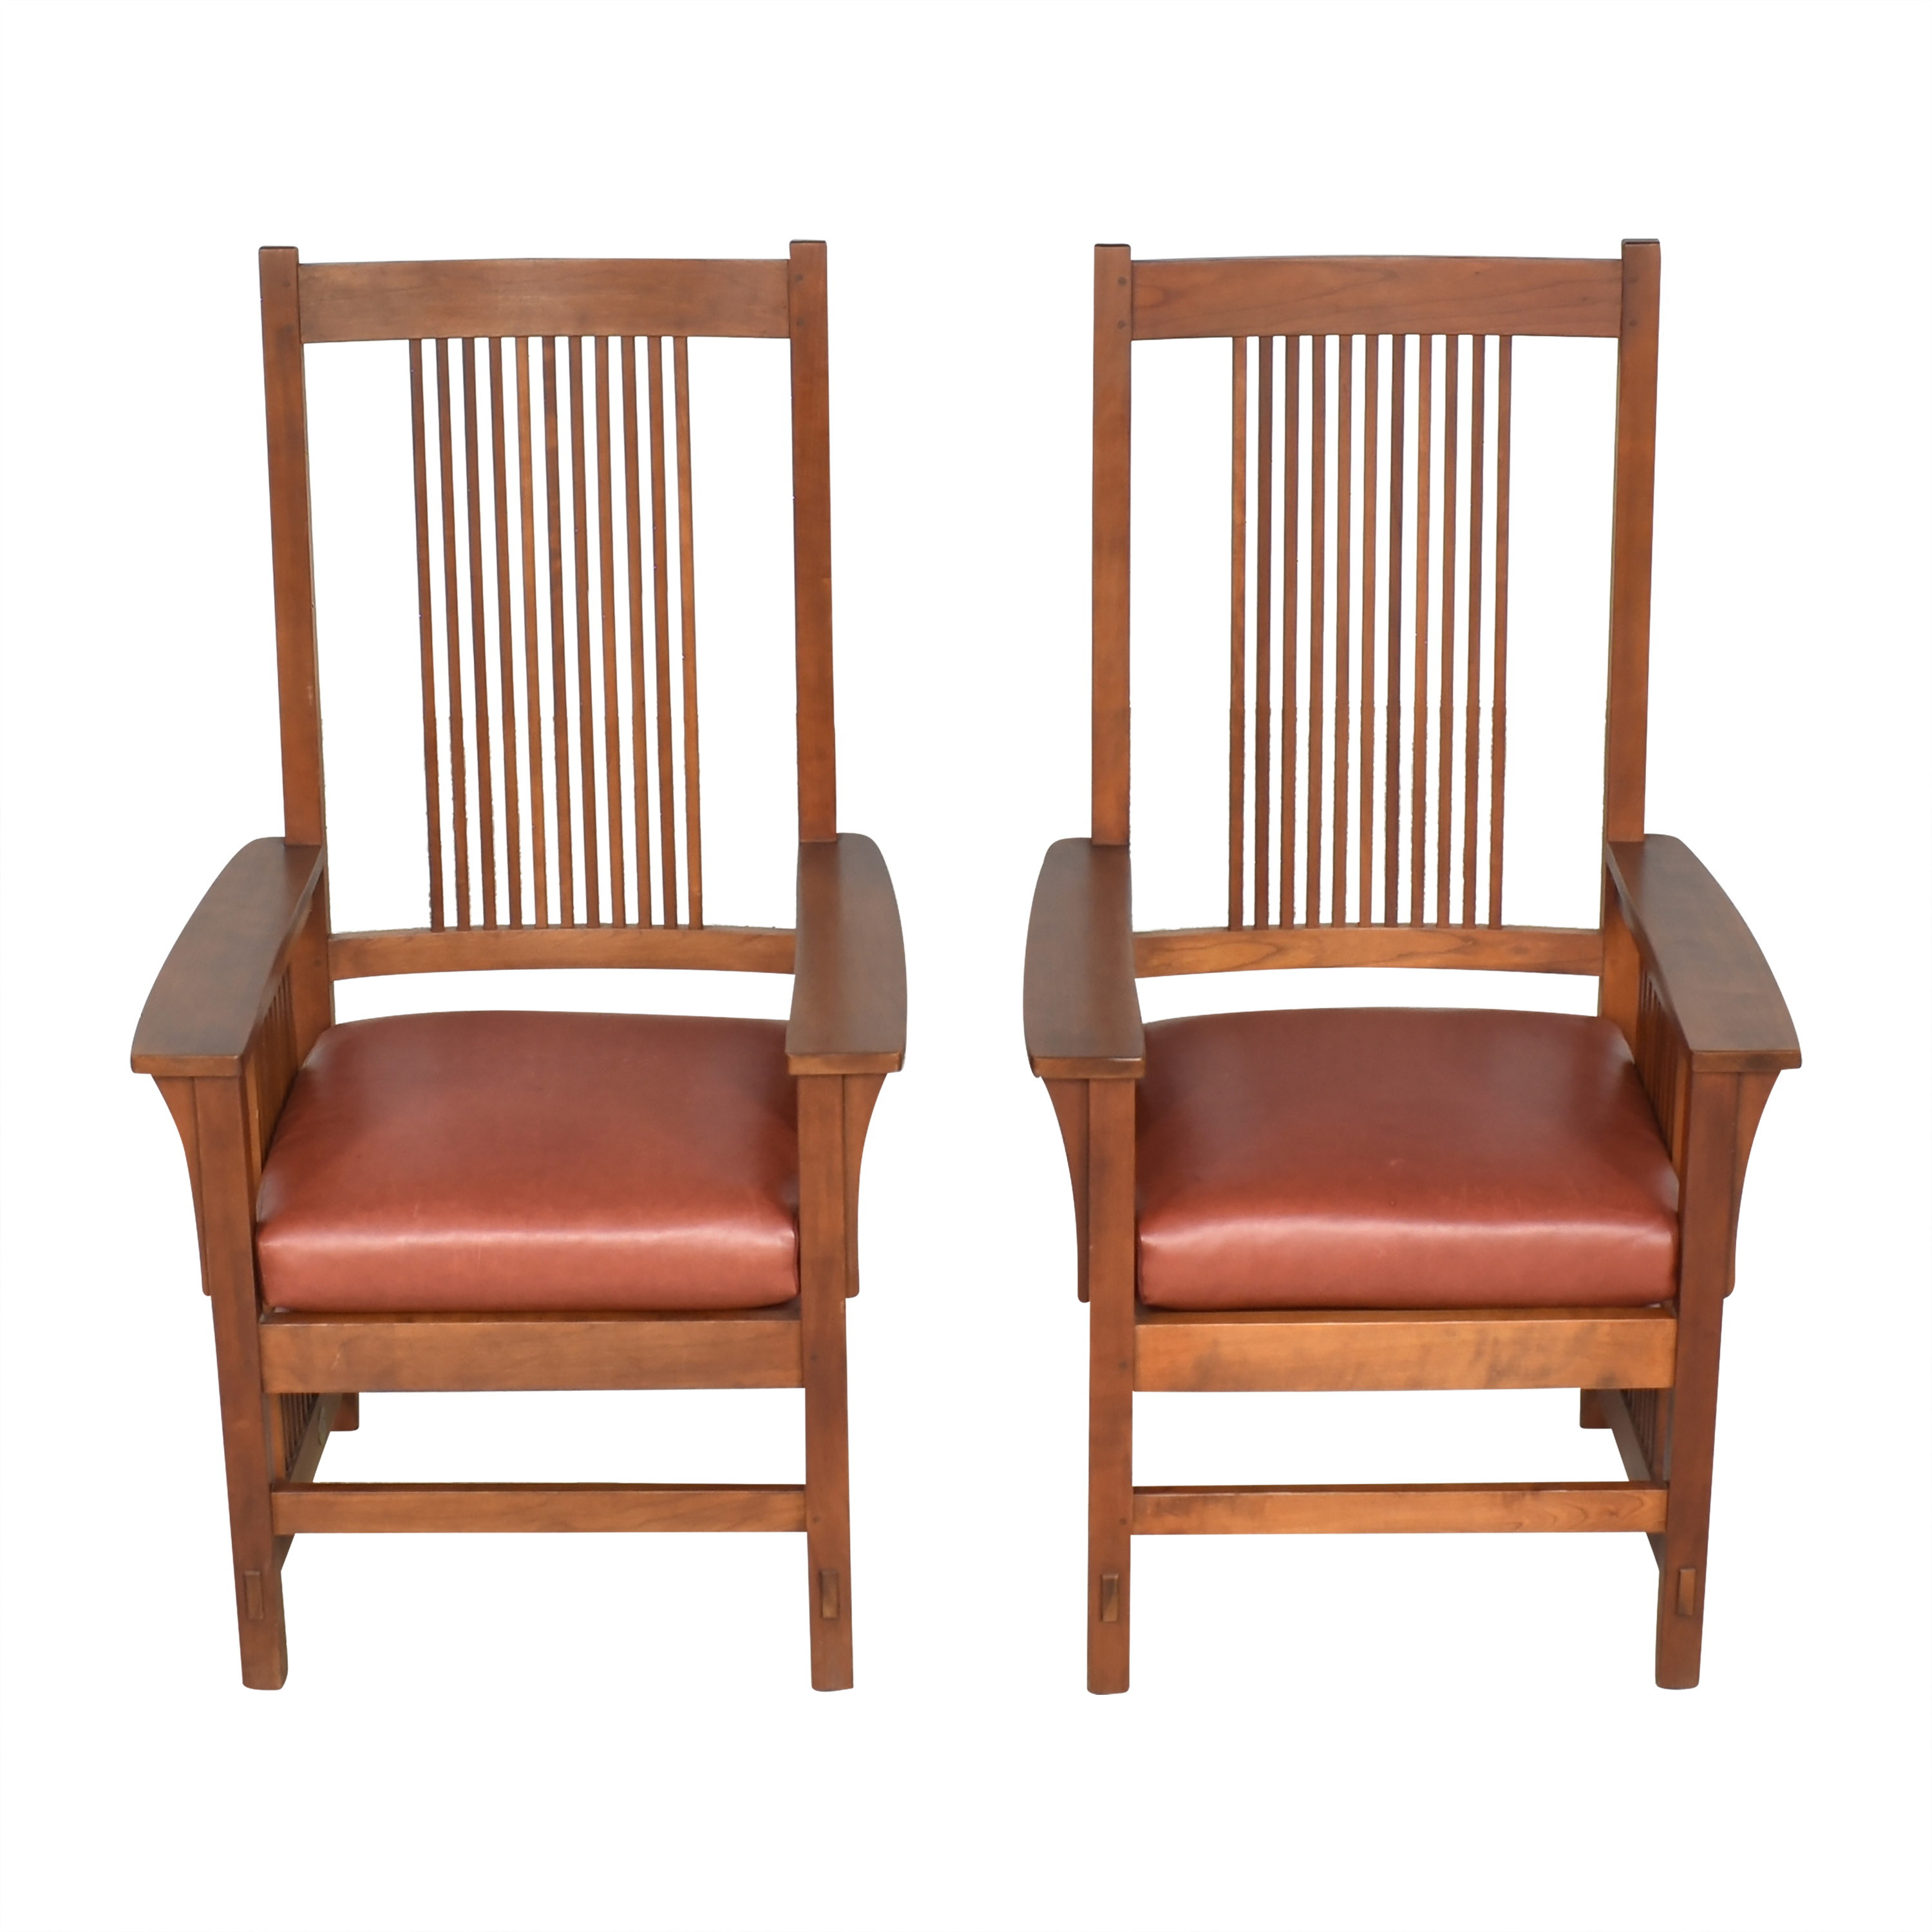 Stickley Furniture Stickley Spindle Dining Arm Chairs dimensions